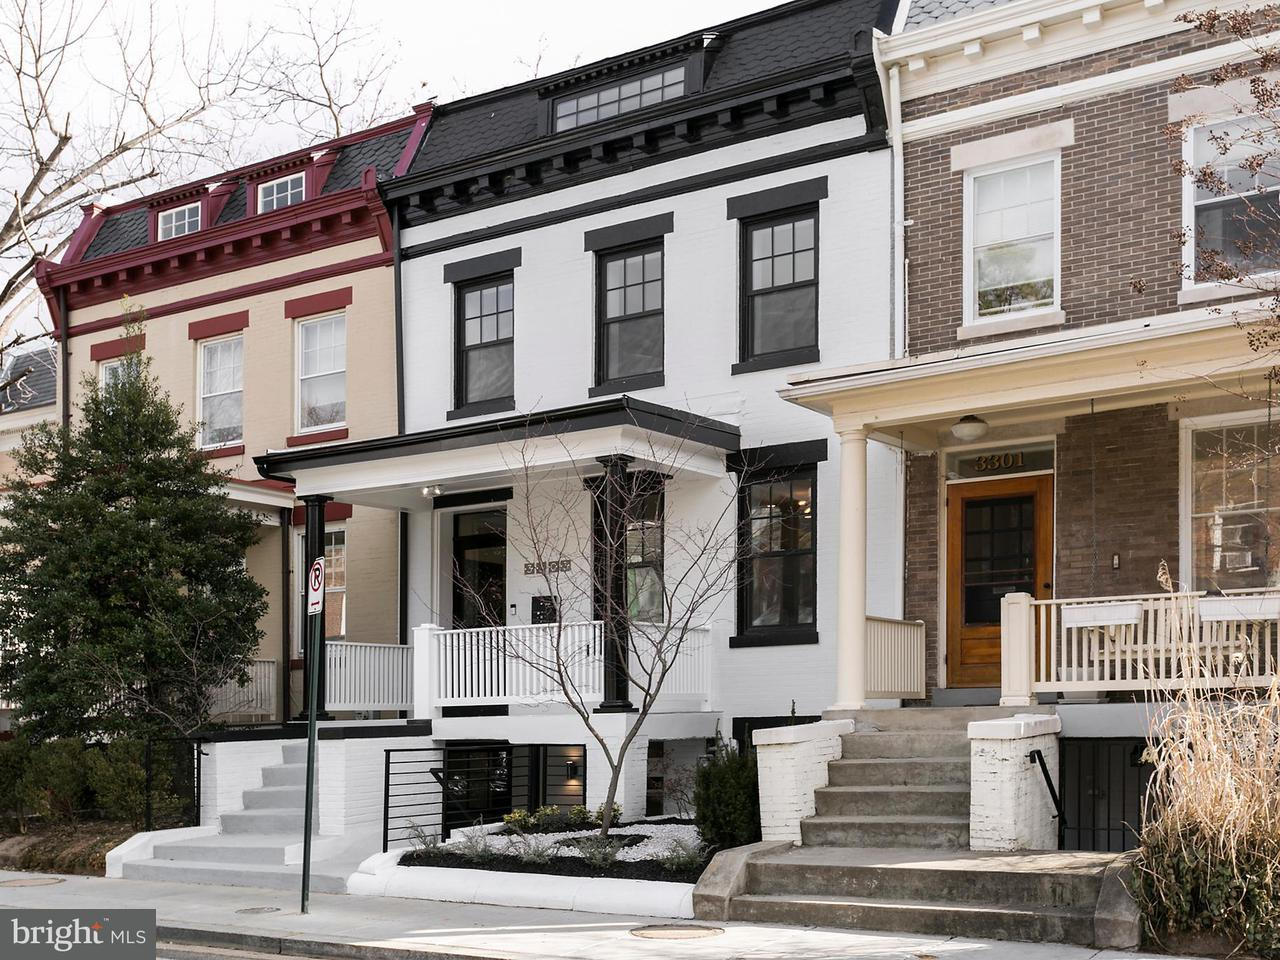 Townhouse for Sale at 3303 Brown St Nw 3303 Brown St Nw Washington, District Of Columbia 20010 United States